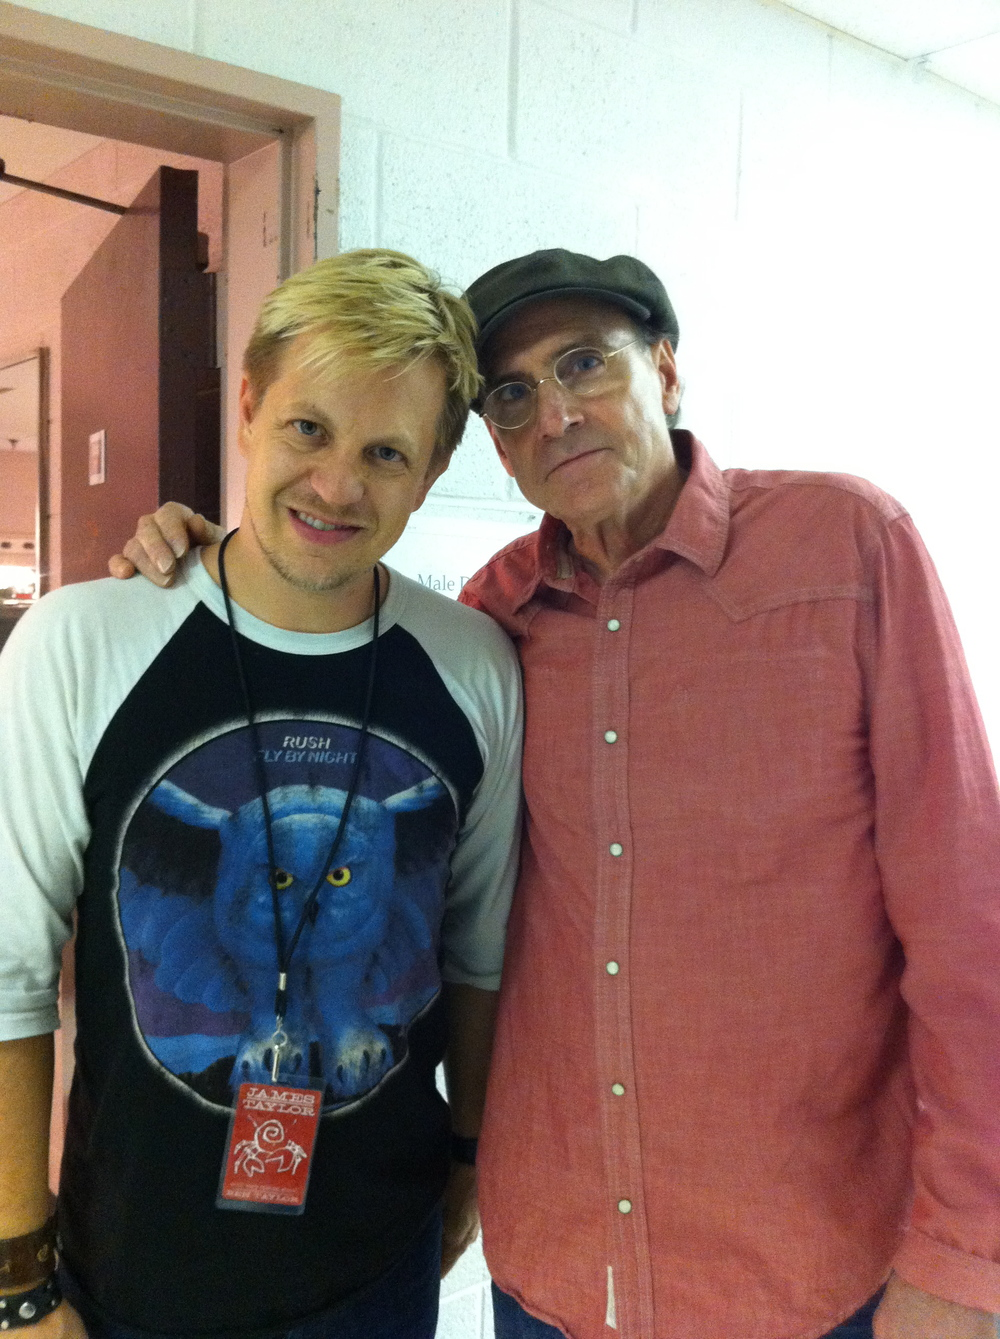 w/ James Taylor after James & Ben Taylor show in Virginia 2011